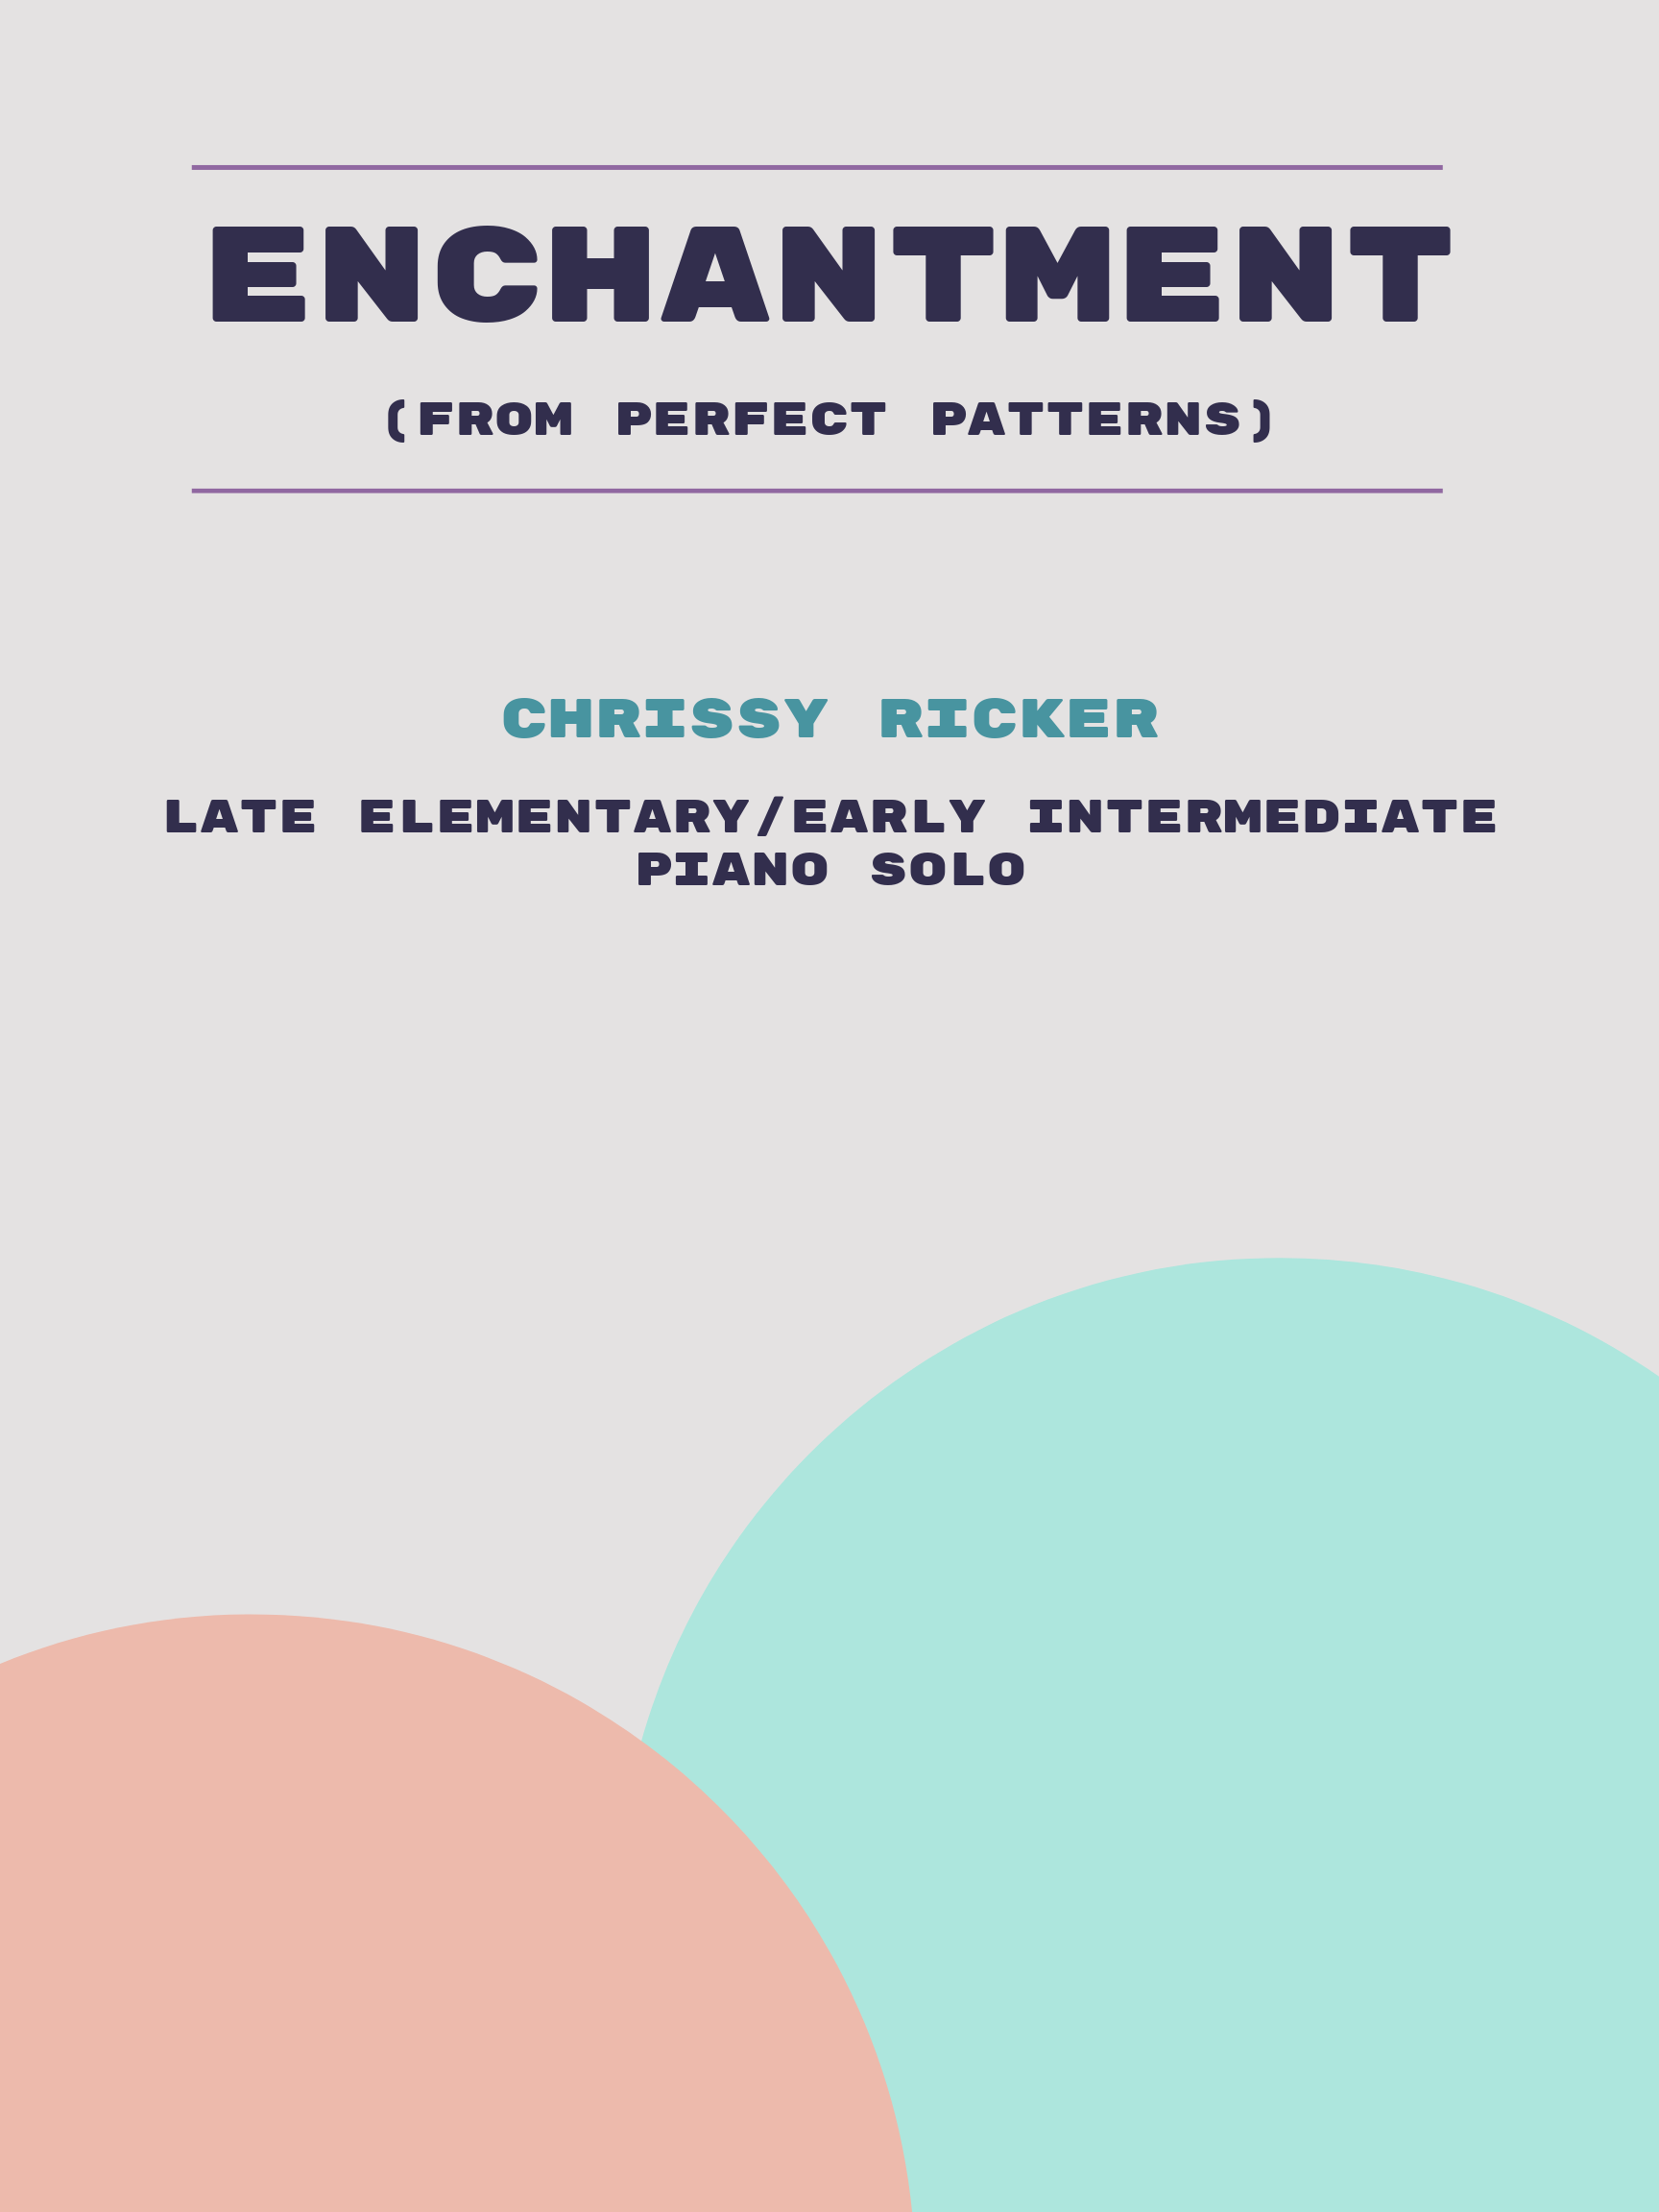 Enchantment by Chrissy Ricker